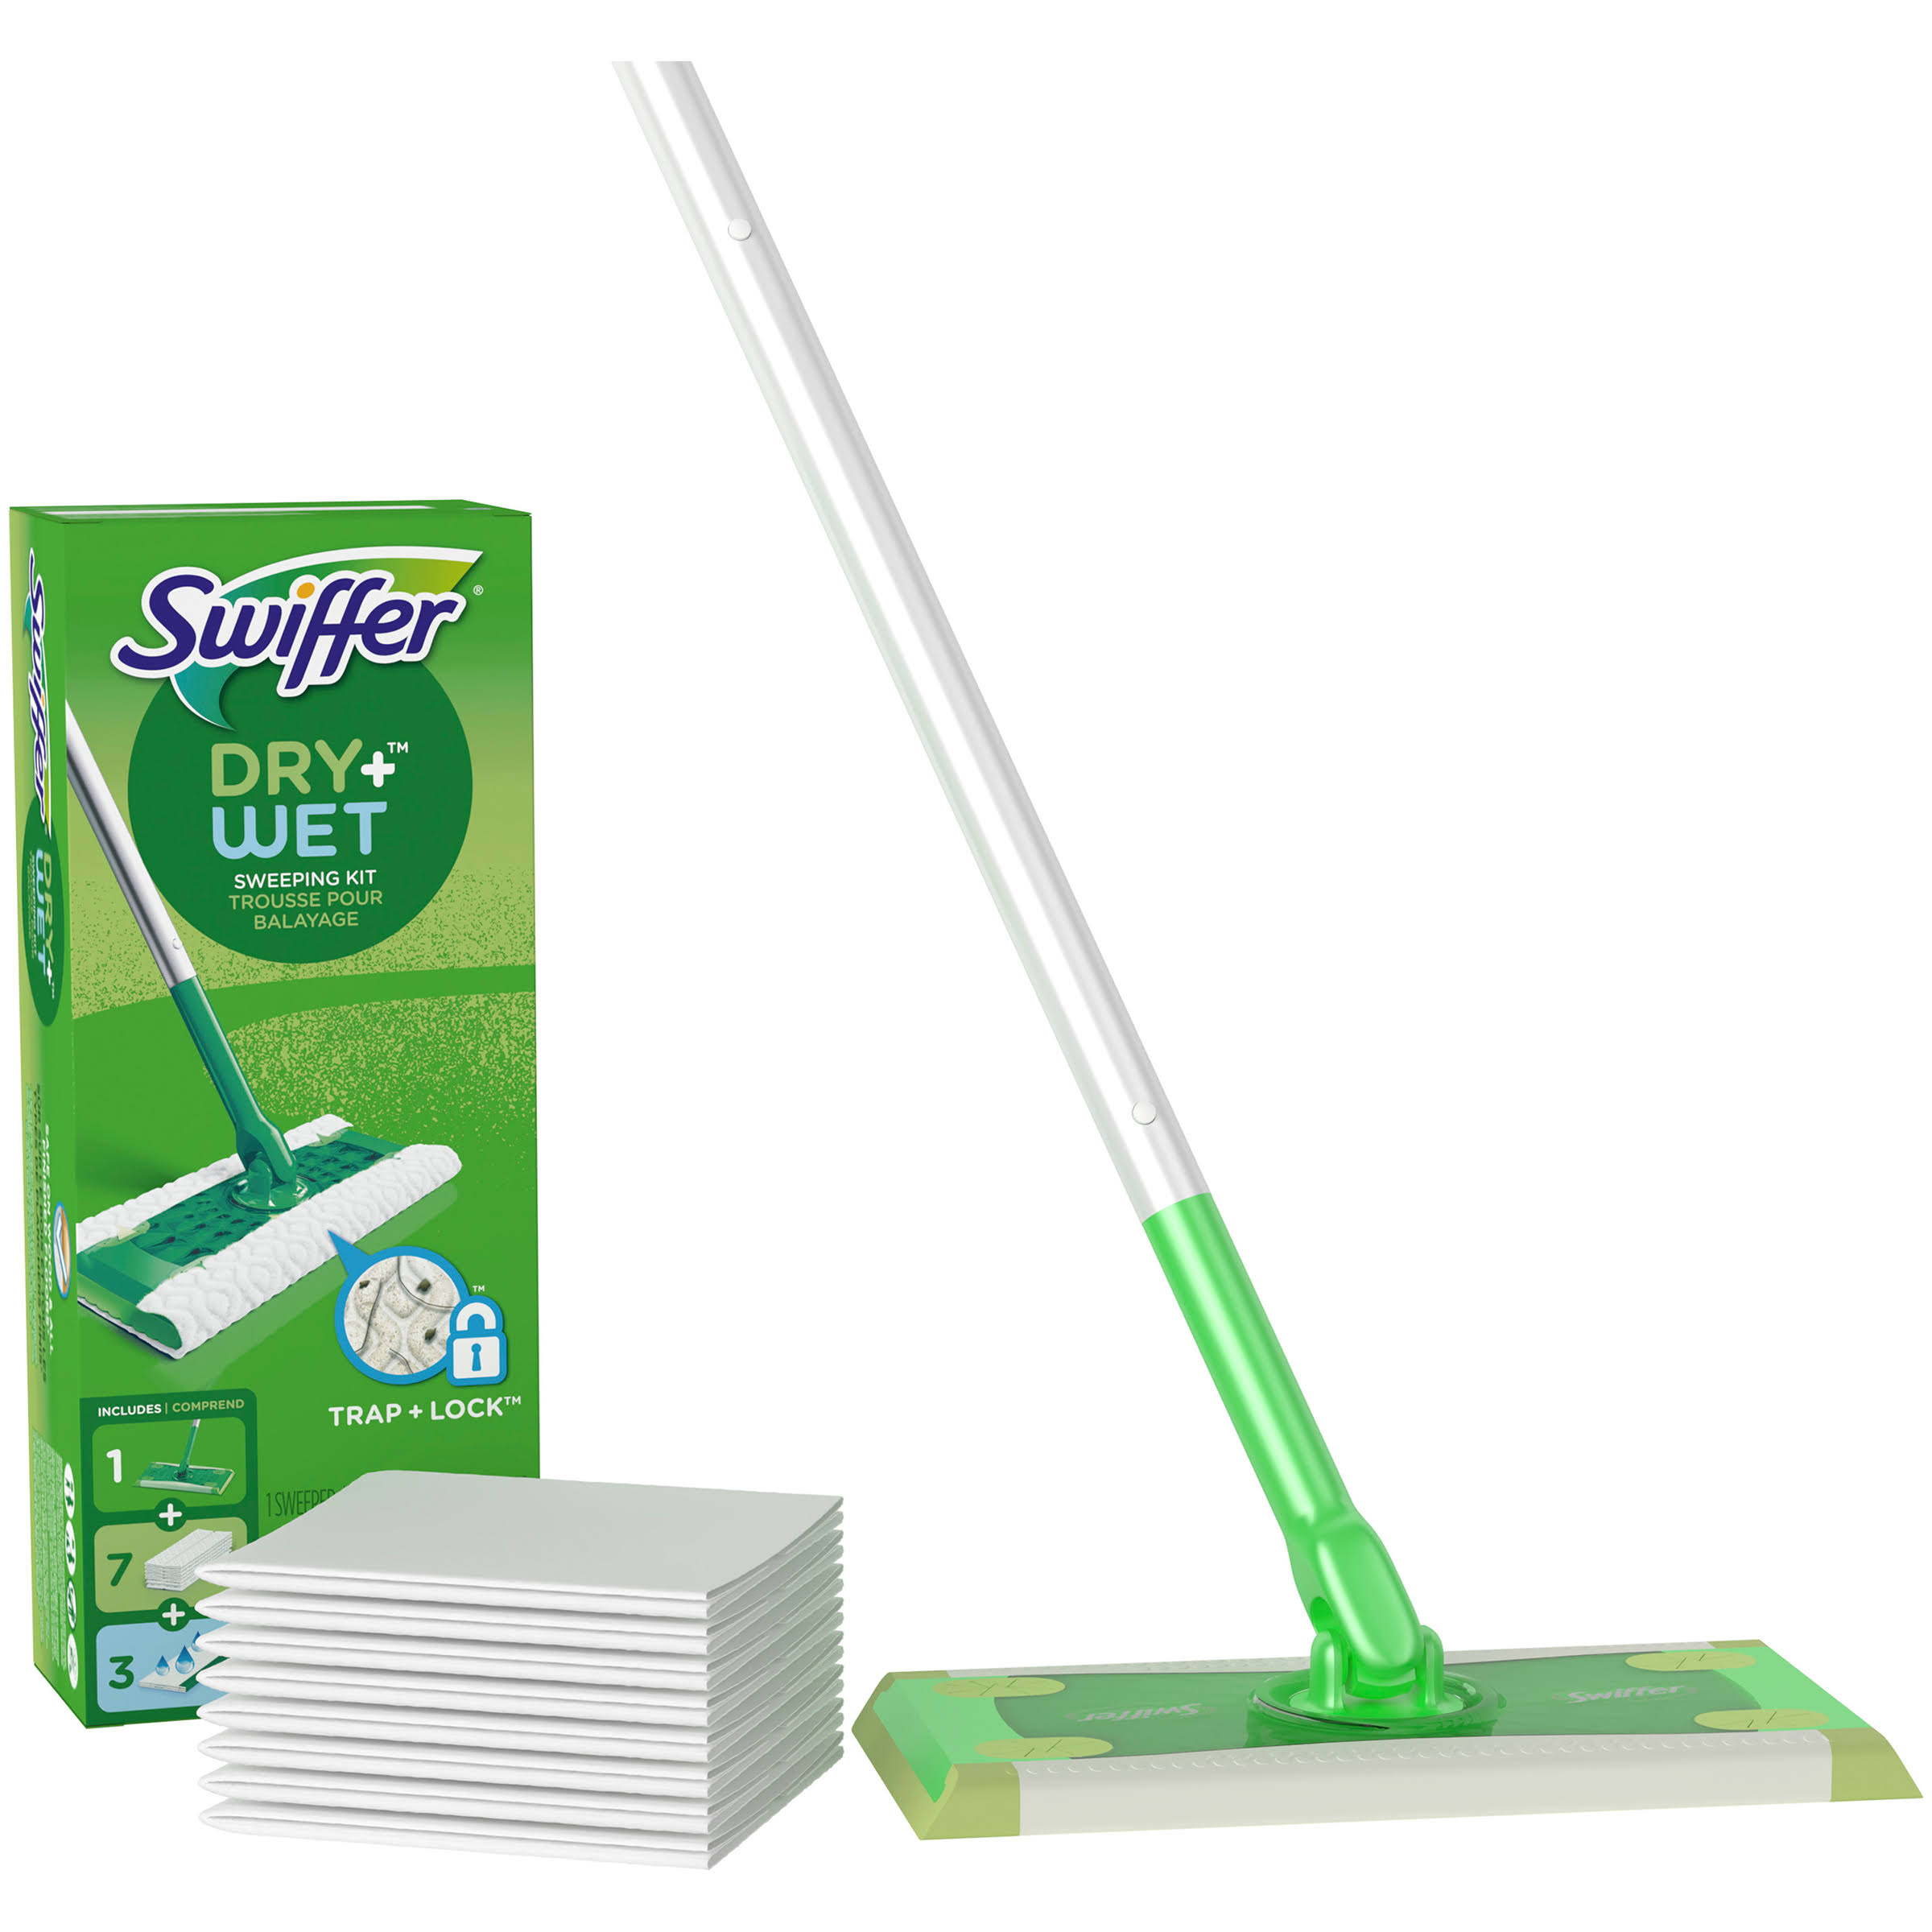 Swiffer Sweeper Dry Wet Cleaner Starter Kit - 11ct